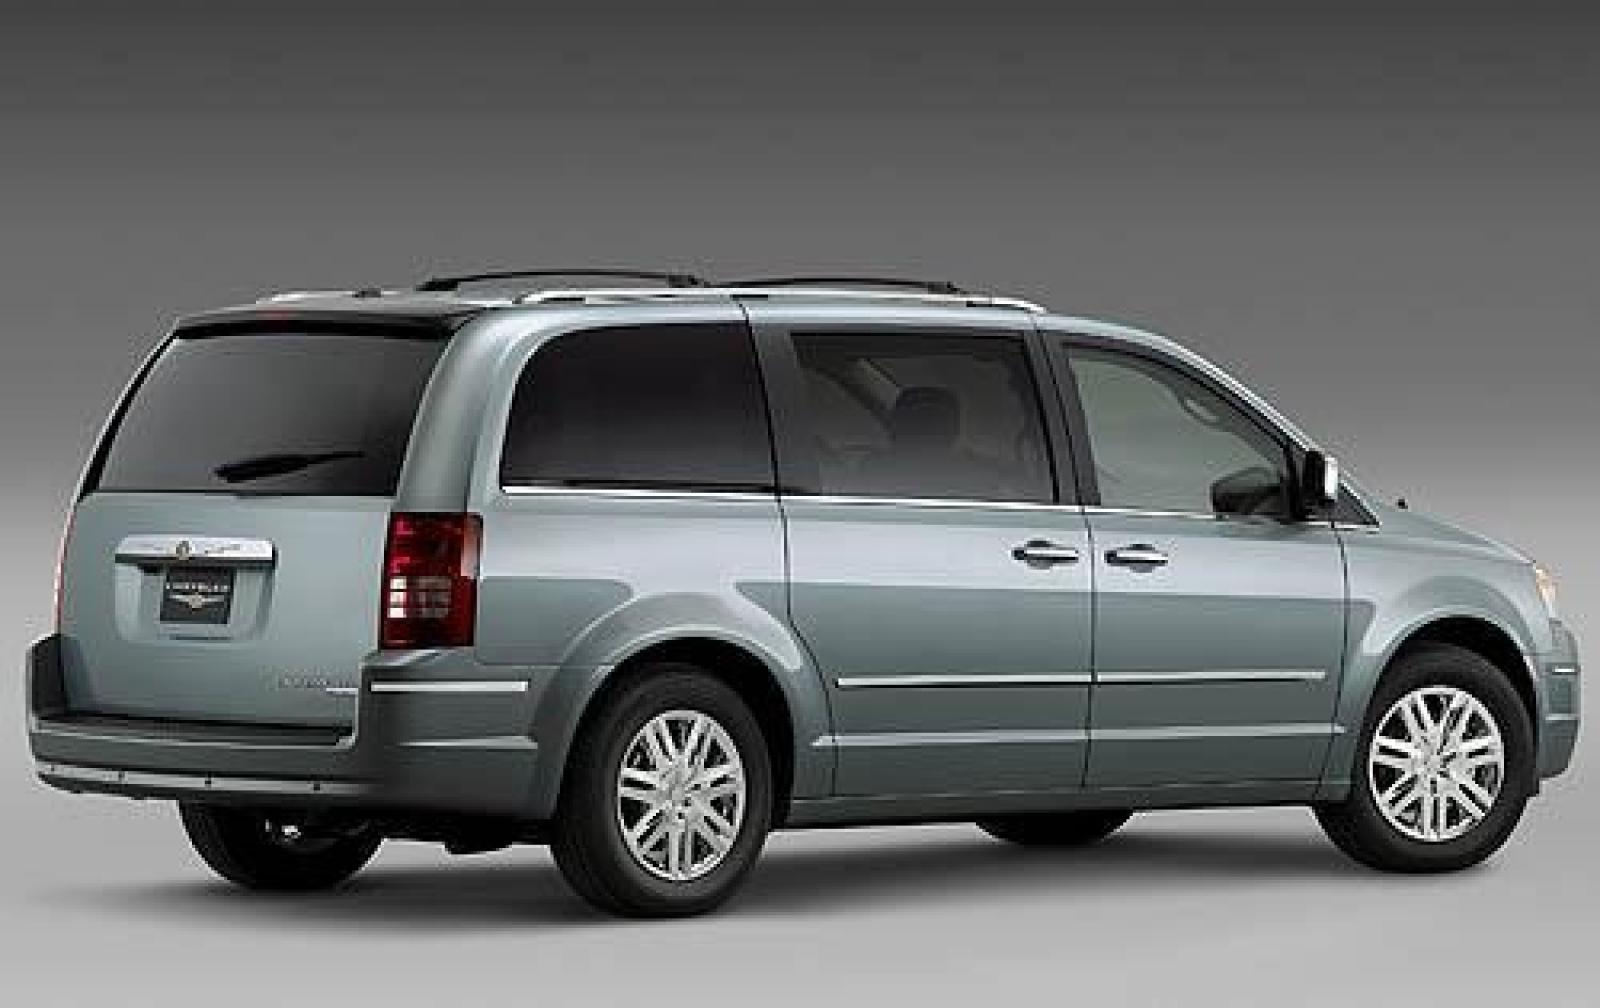 2009 chrysler town and country information and photos zombiedrive. Cars Review. Best American Auto & Cars Review